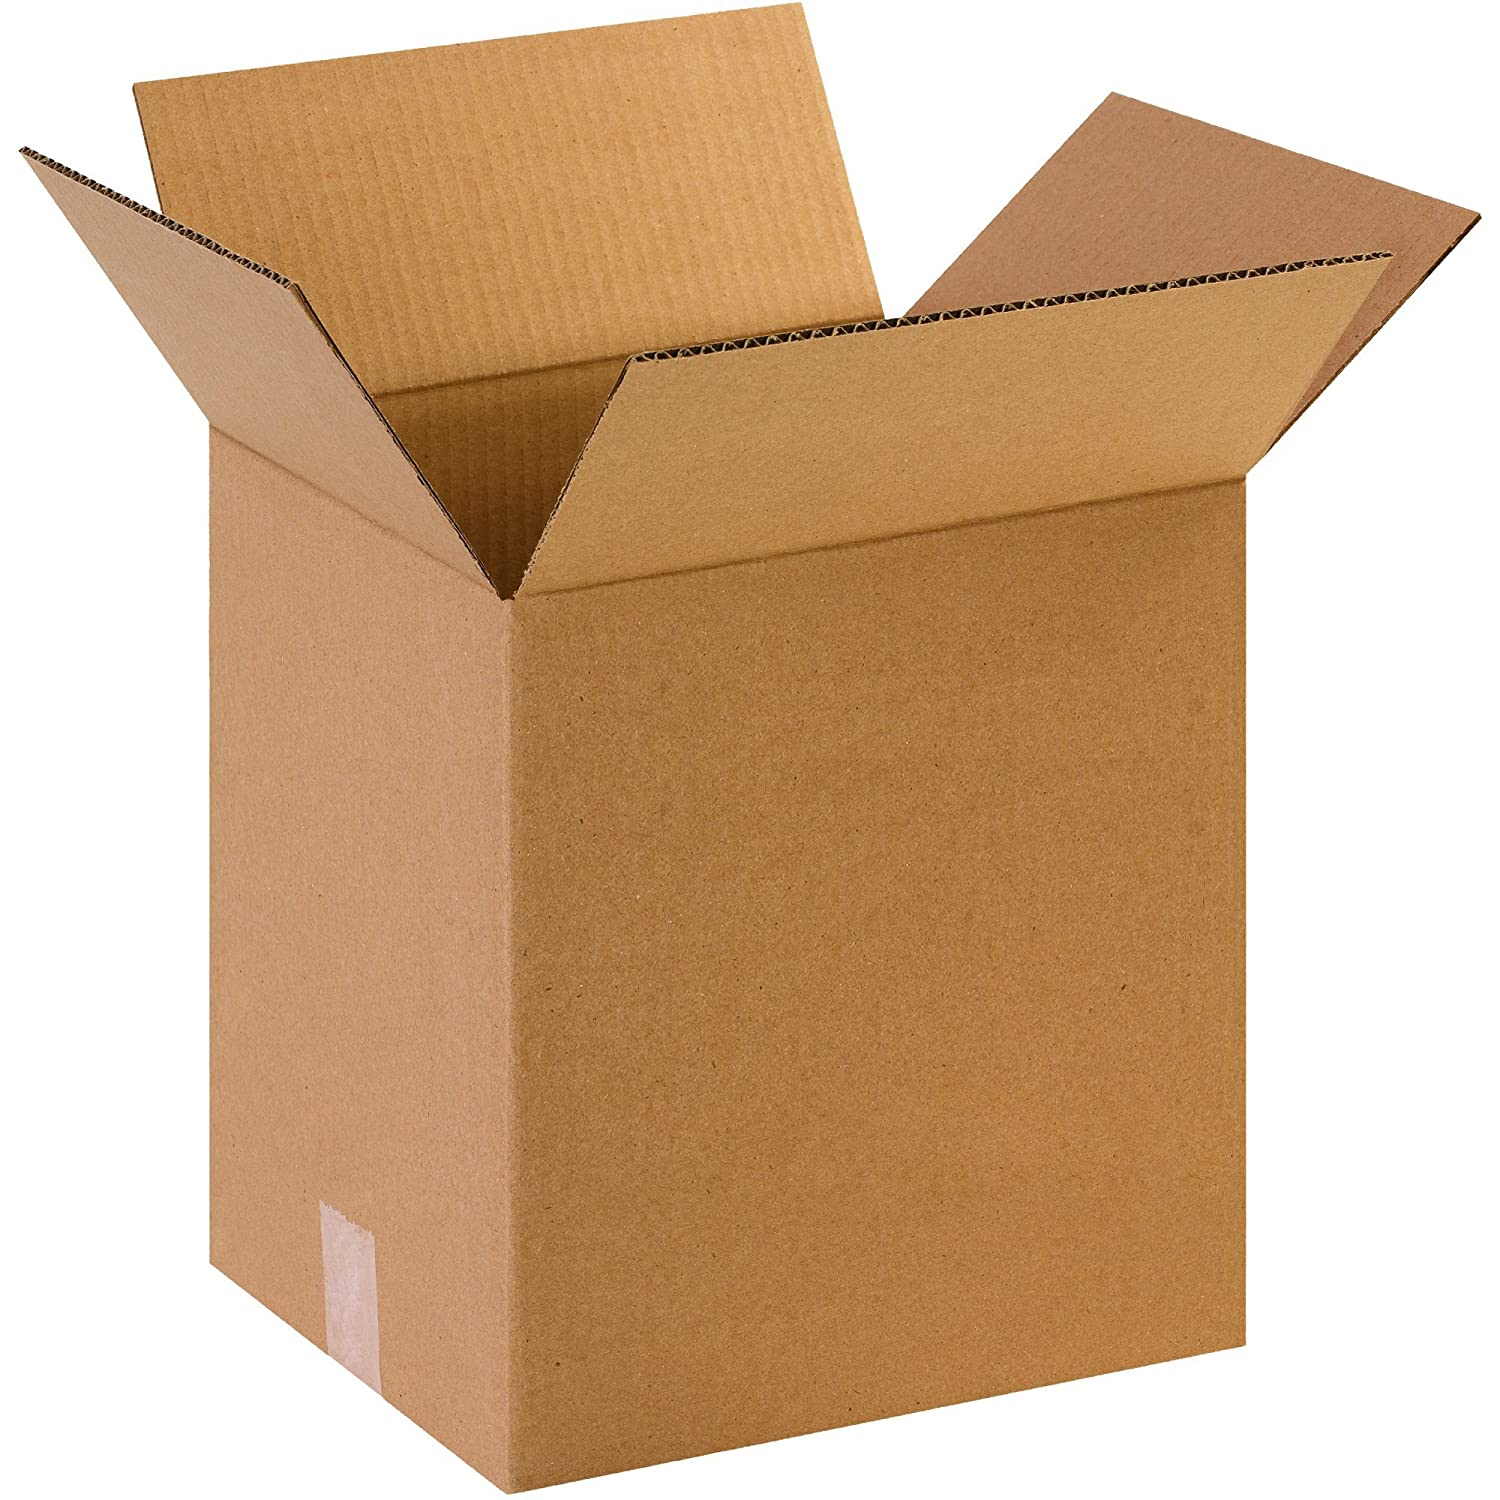 16L x 12W x 16H Partners Brand P161216 Corrugated Boxes Pack of 25 Kraft